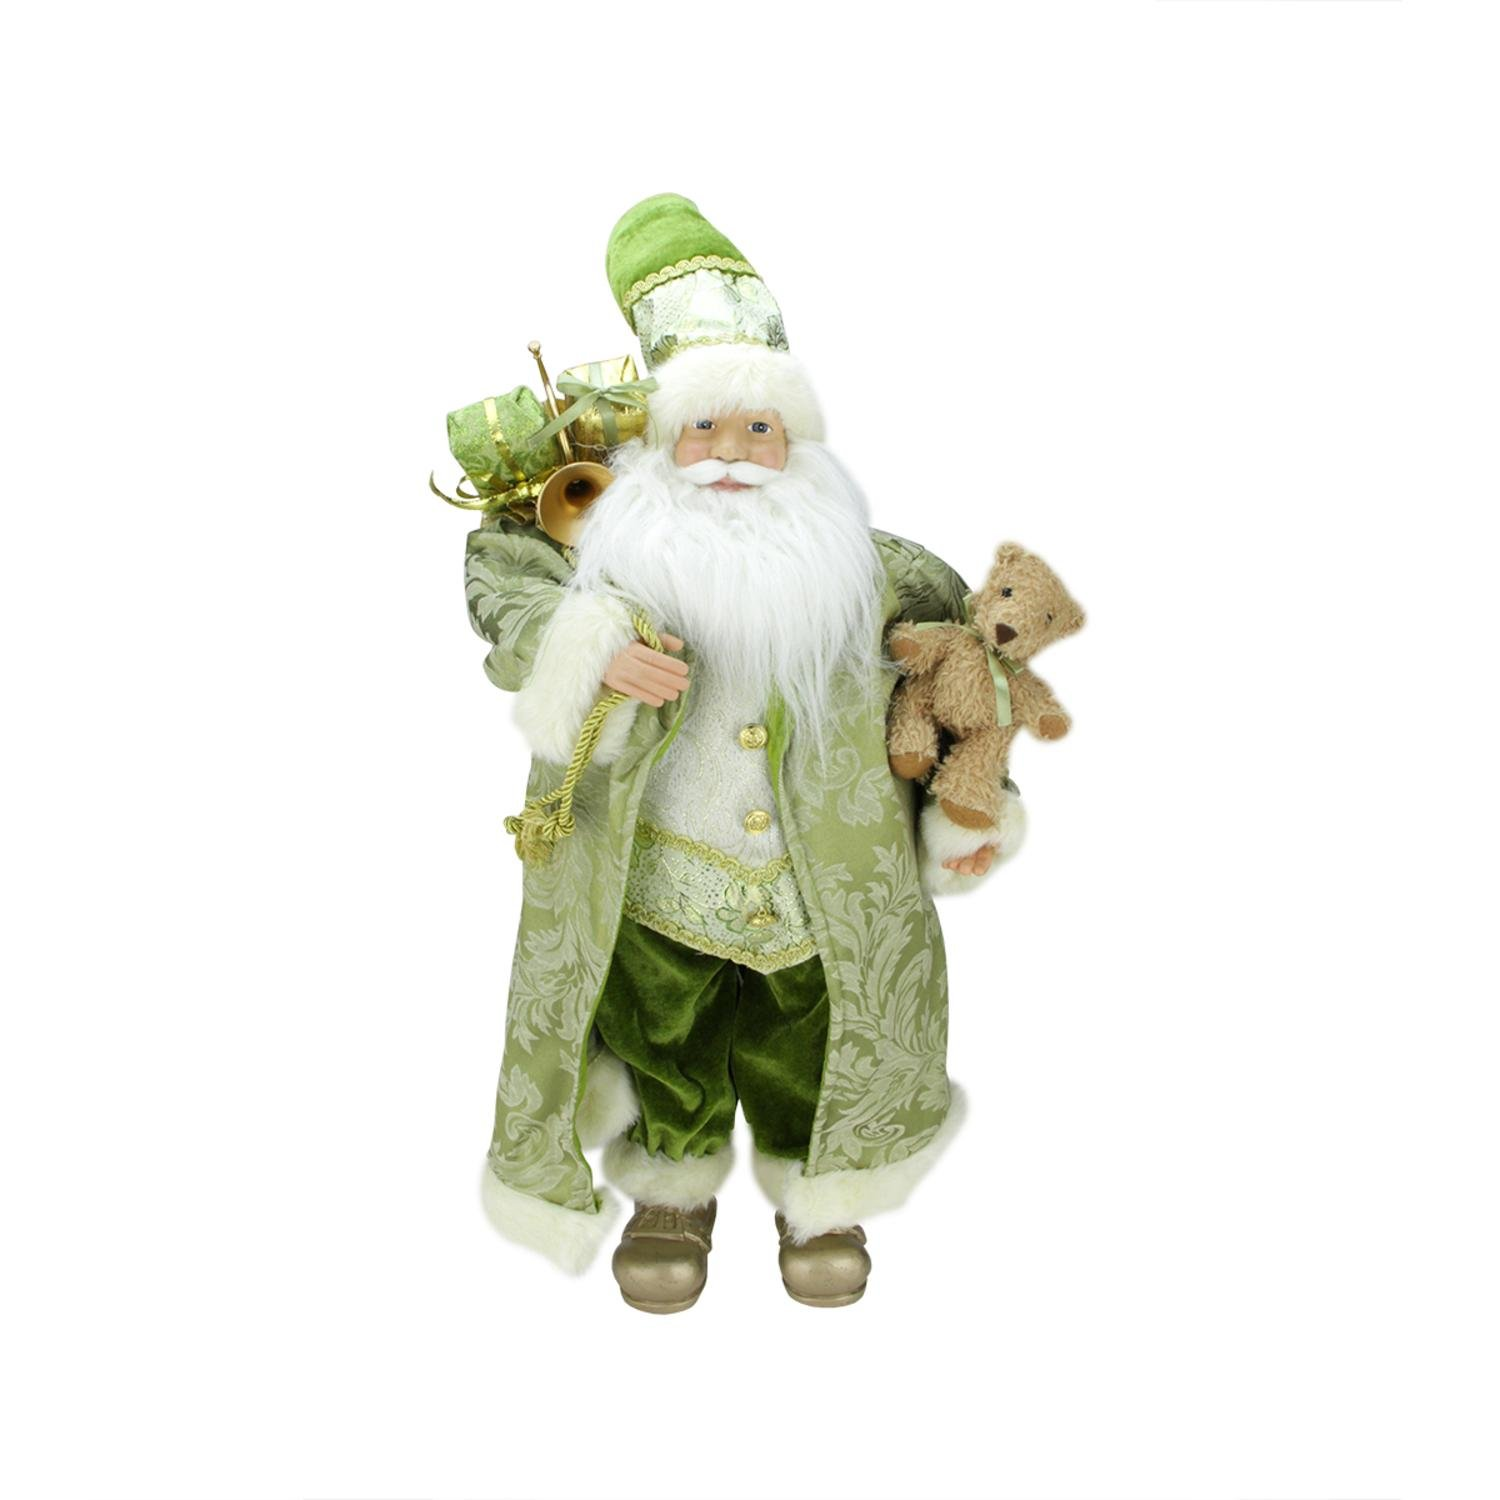 Northlight St. Patrick's Irish Standing Santa Claus Christmas Figure with Teddy Bear and Gift Bag